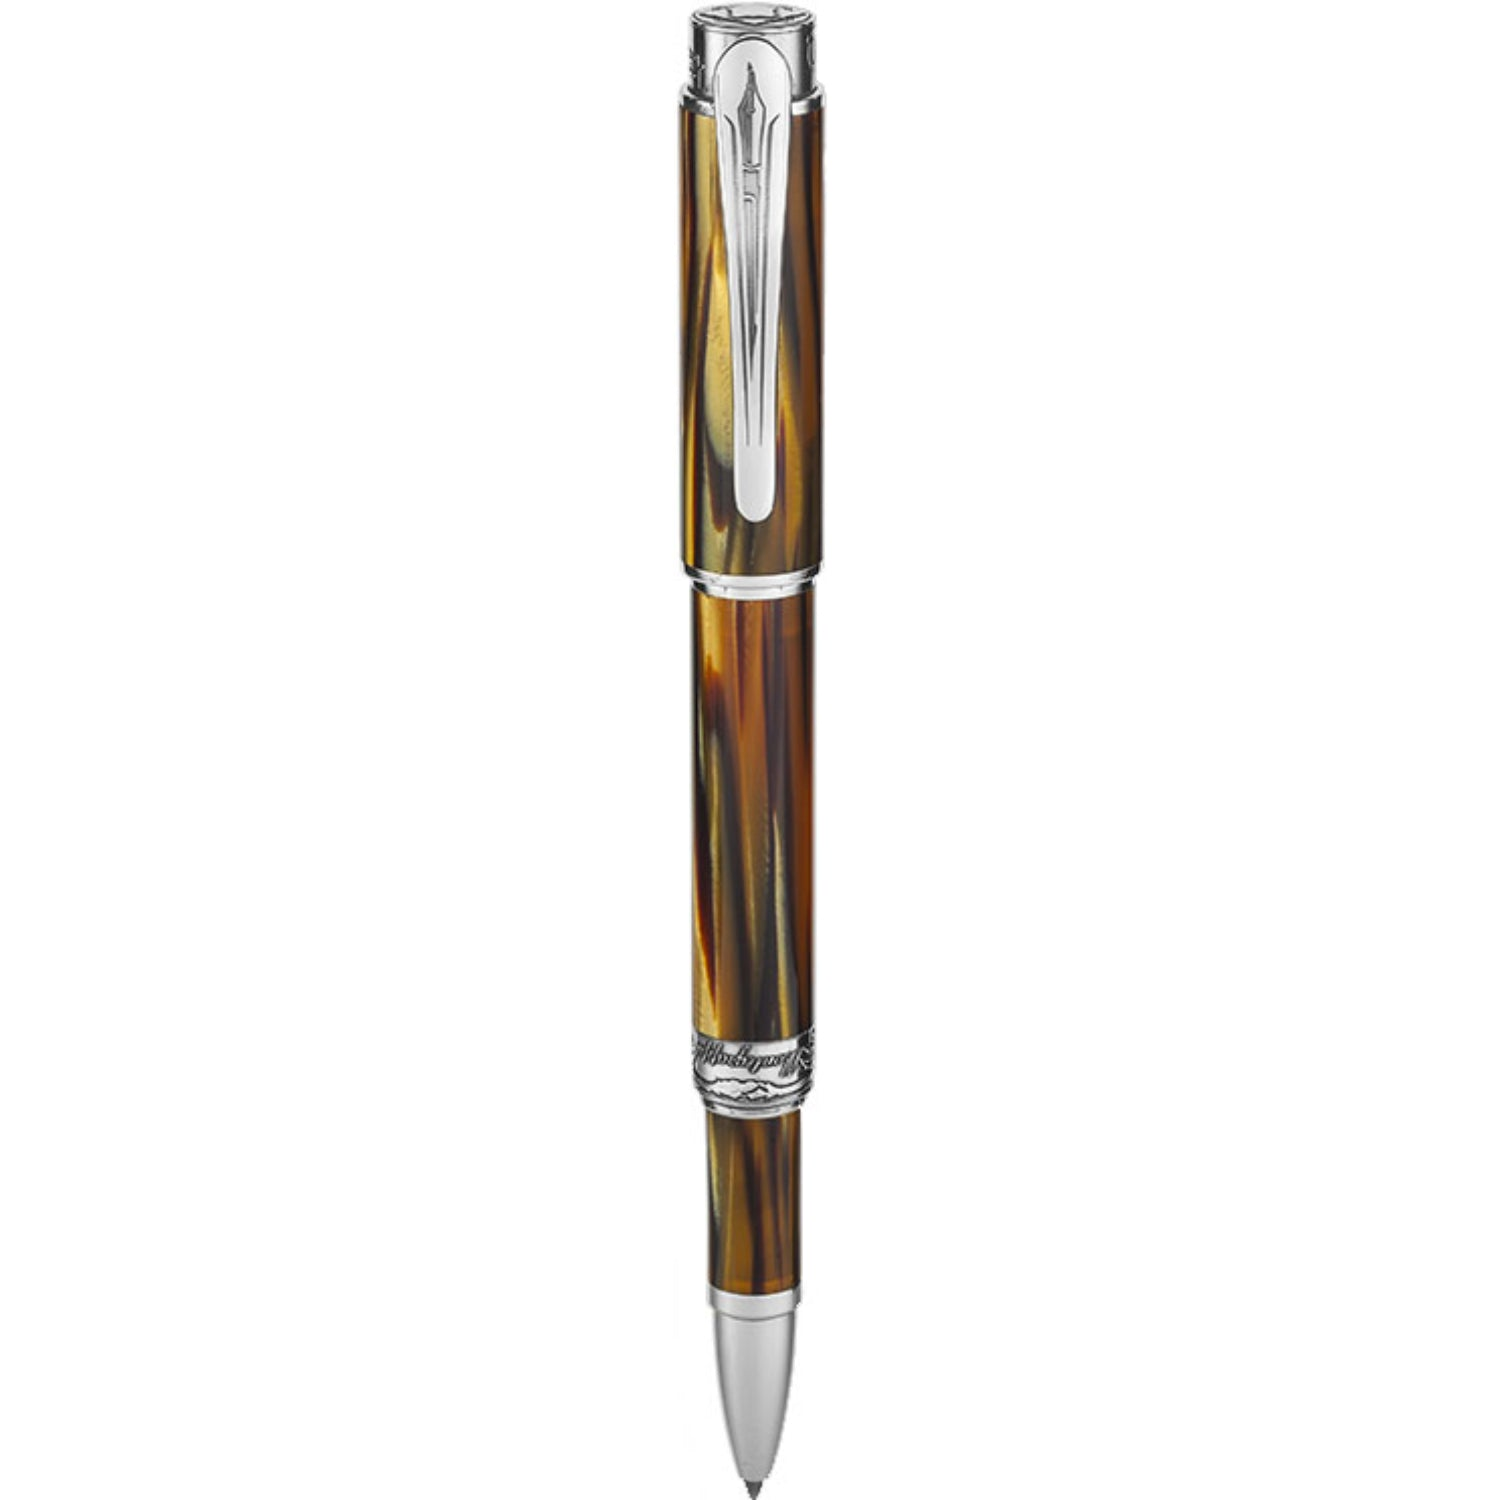 Hemingway : The Writer Rollerball Pen, Silver